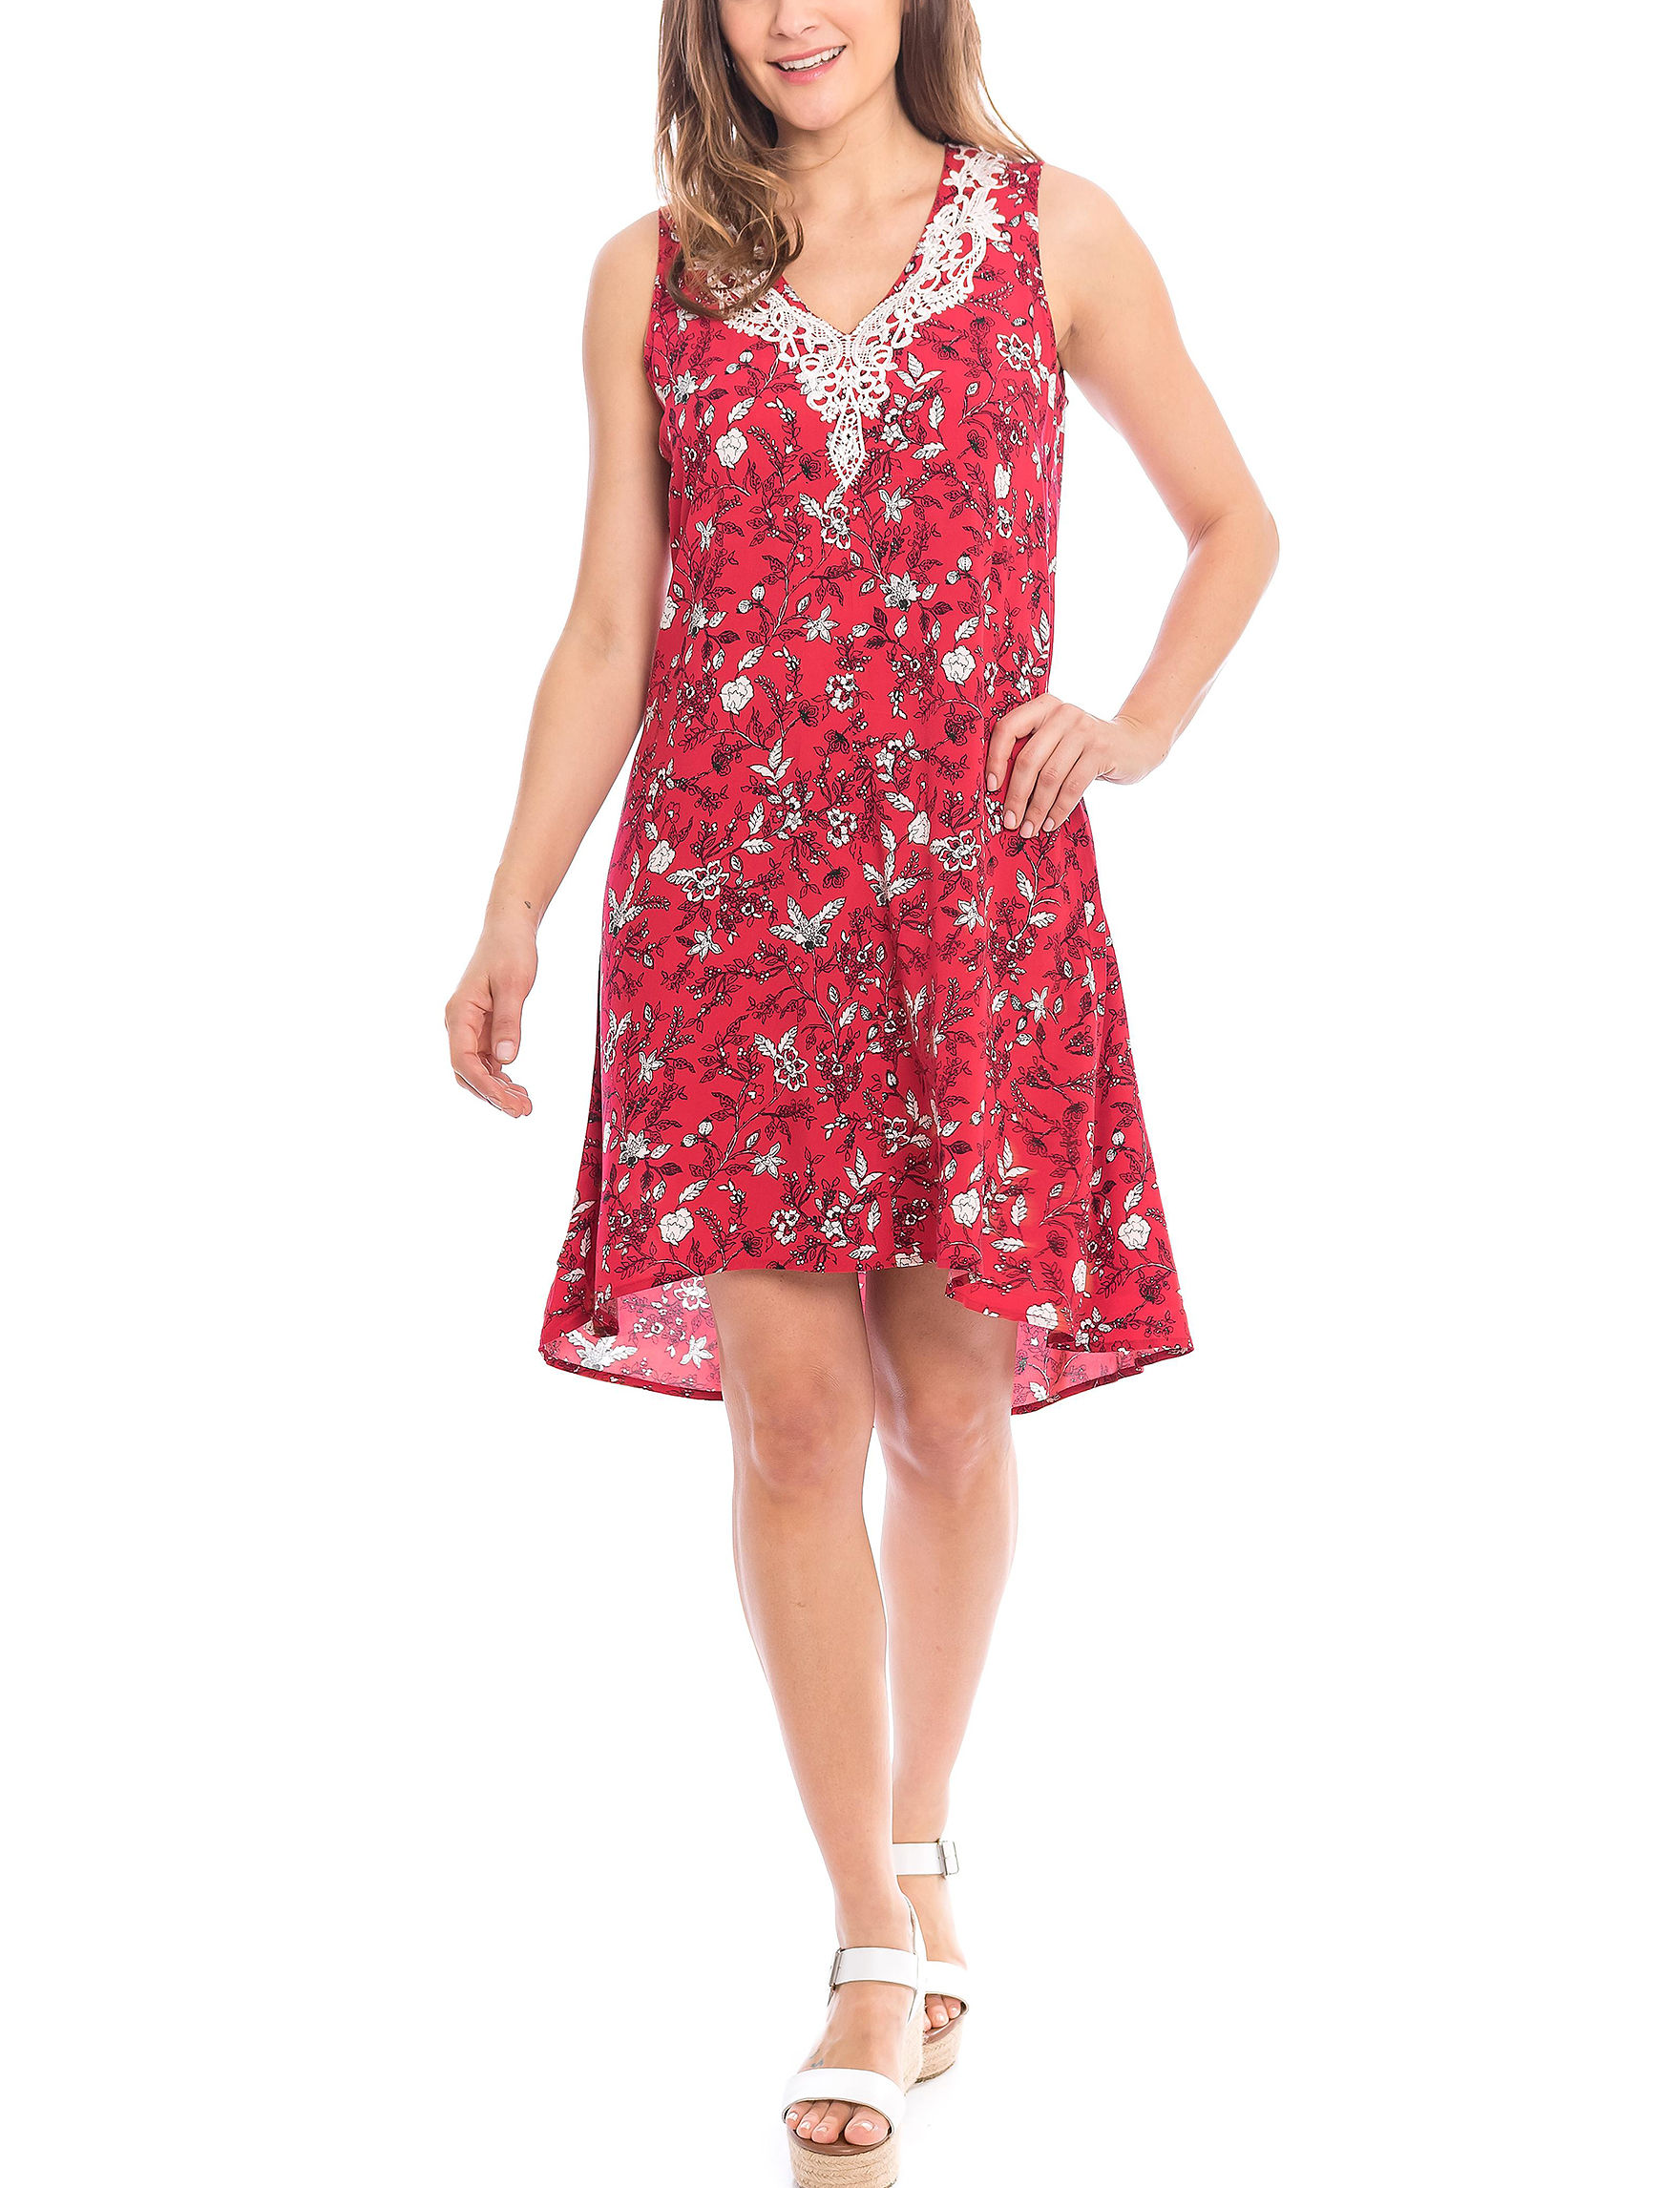 Skyes The Limit Red Multi Everyday & Casual Fit & Flare Dresses